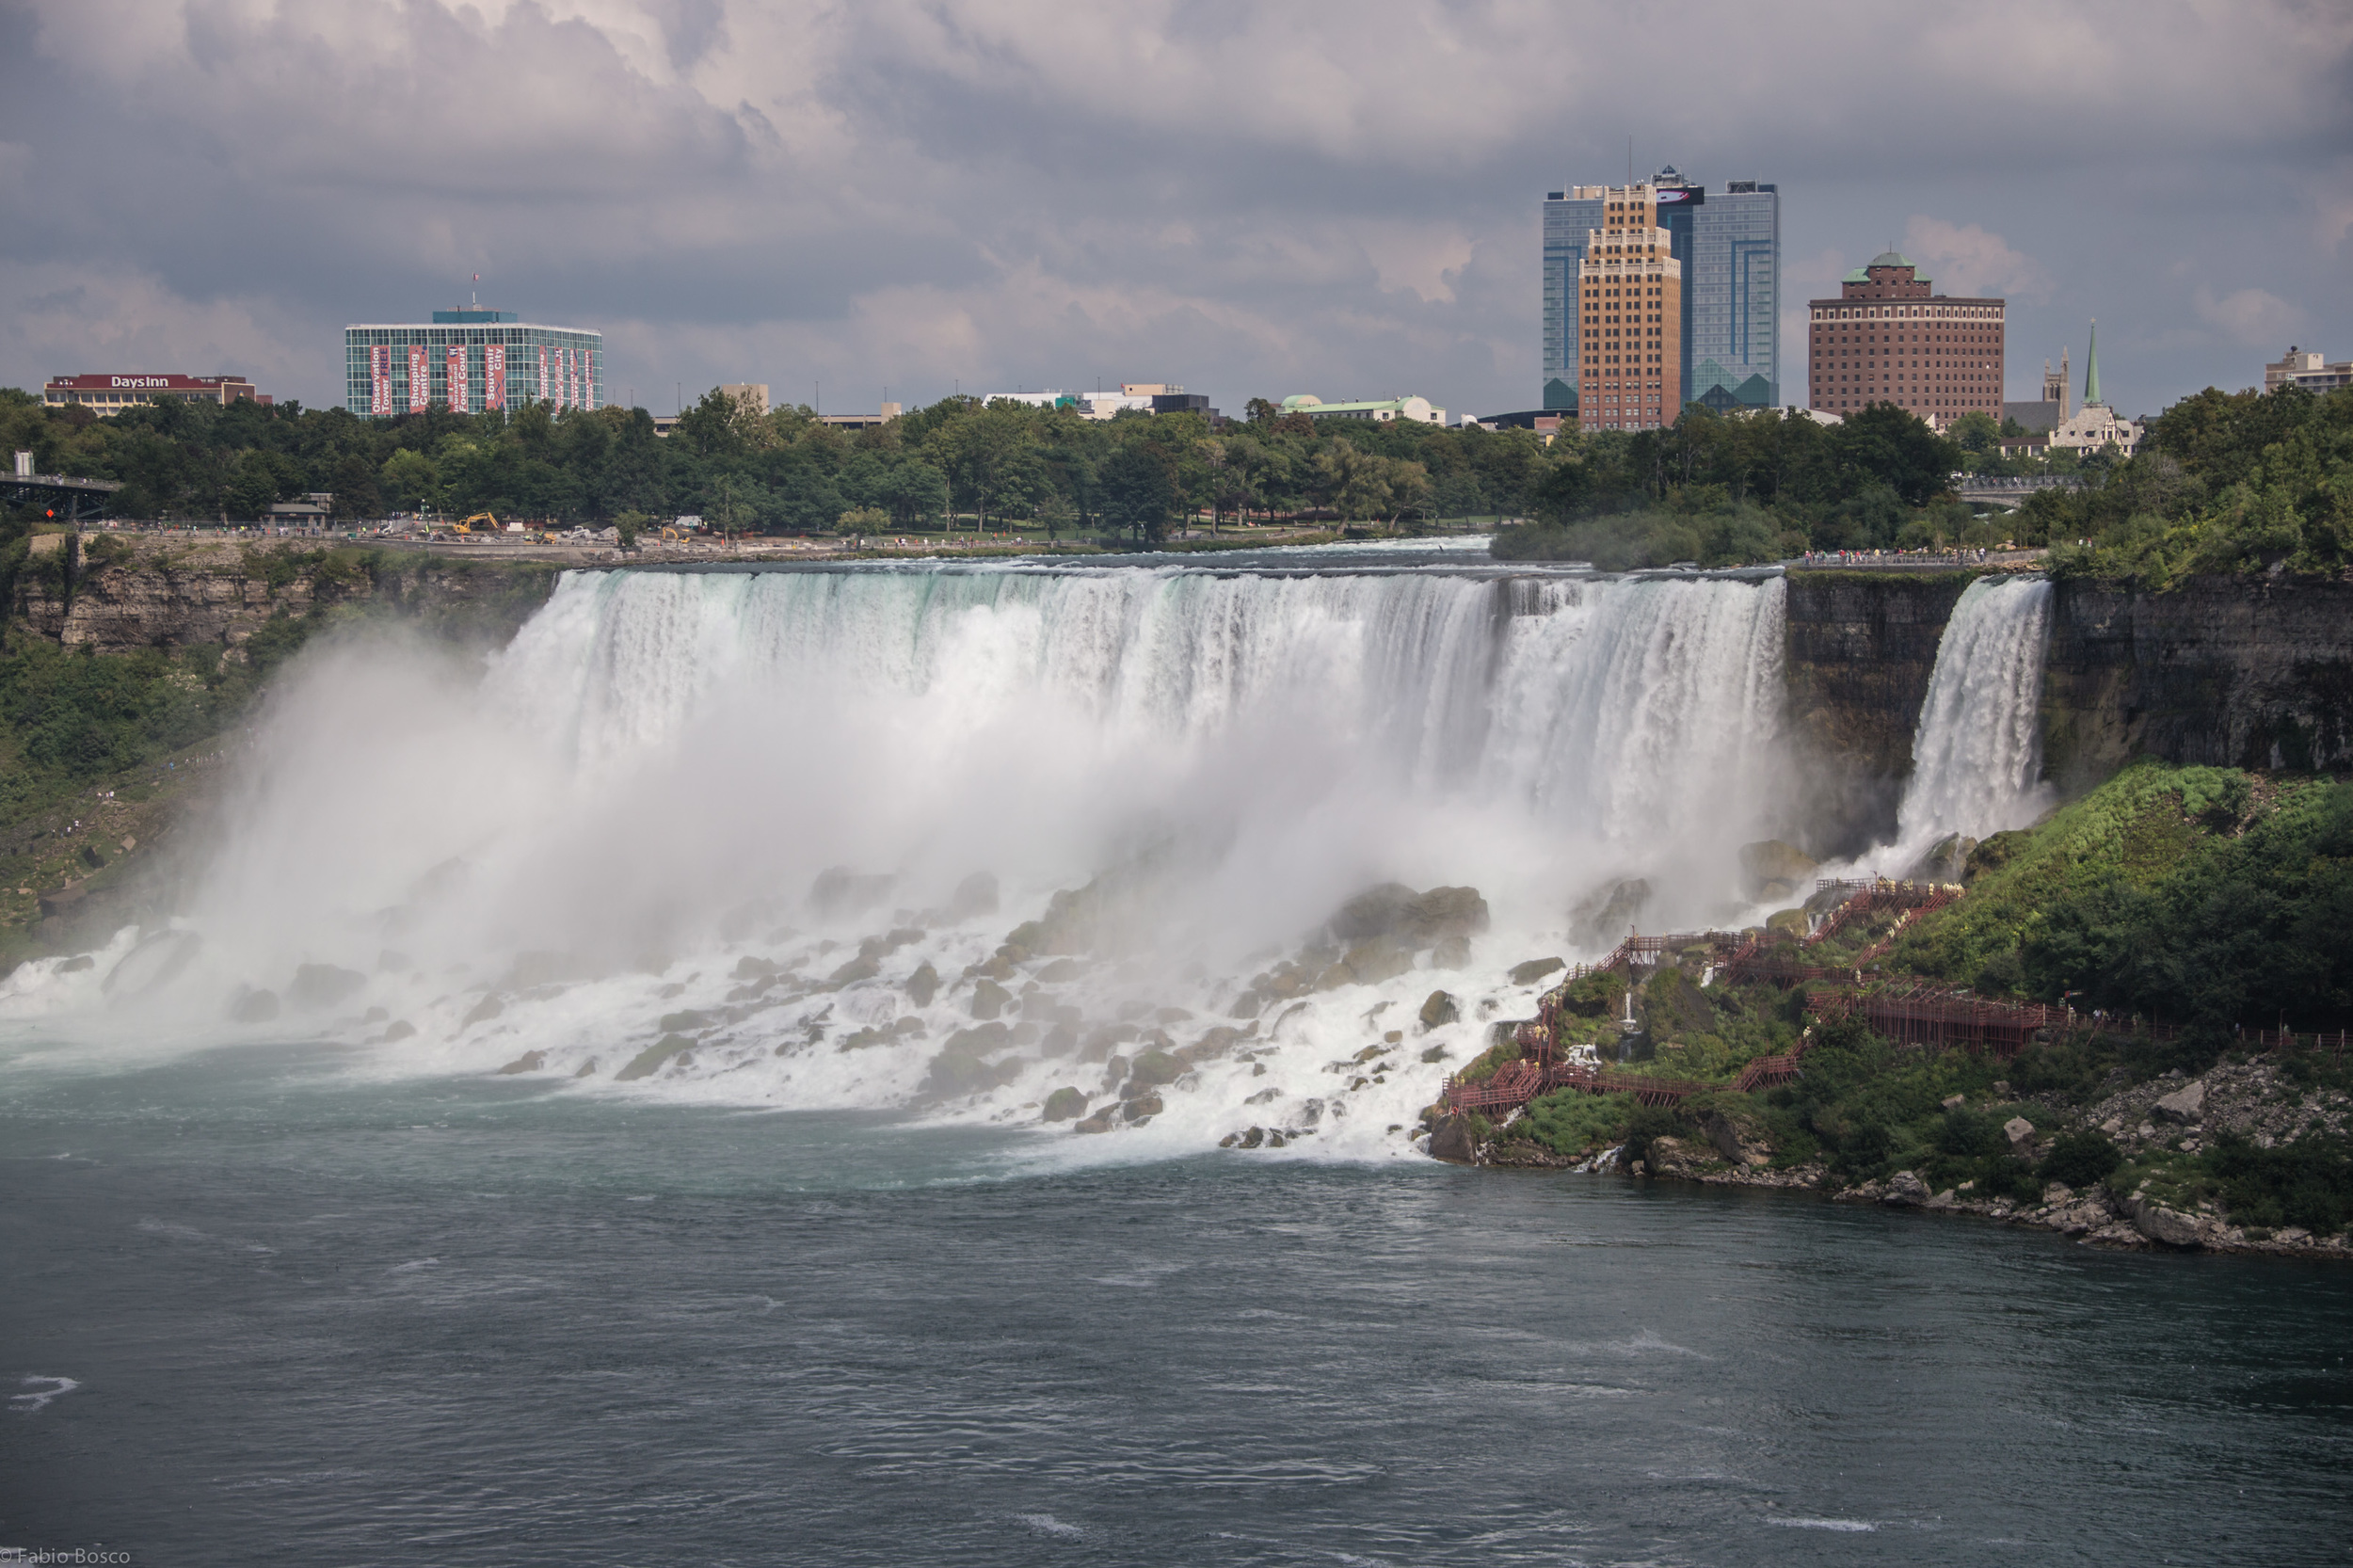 Another view from the American waterfalls and the Bridal Veil